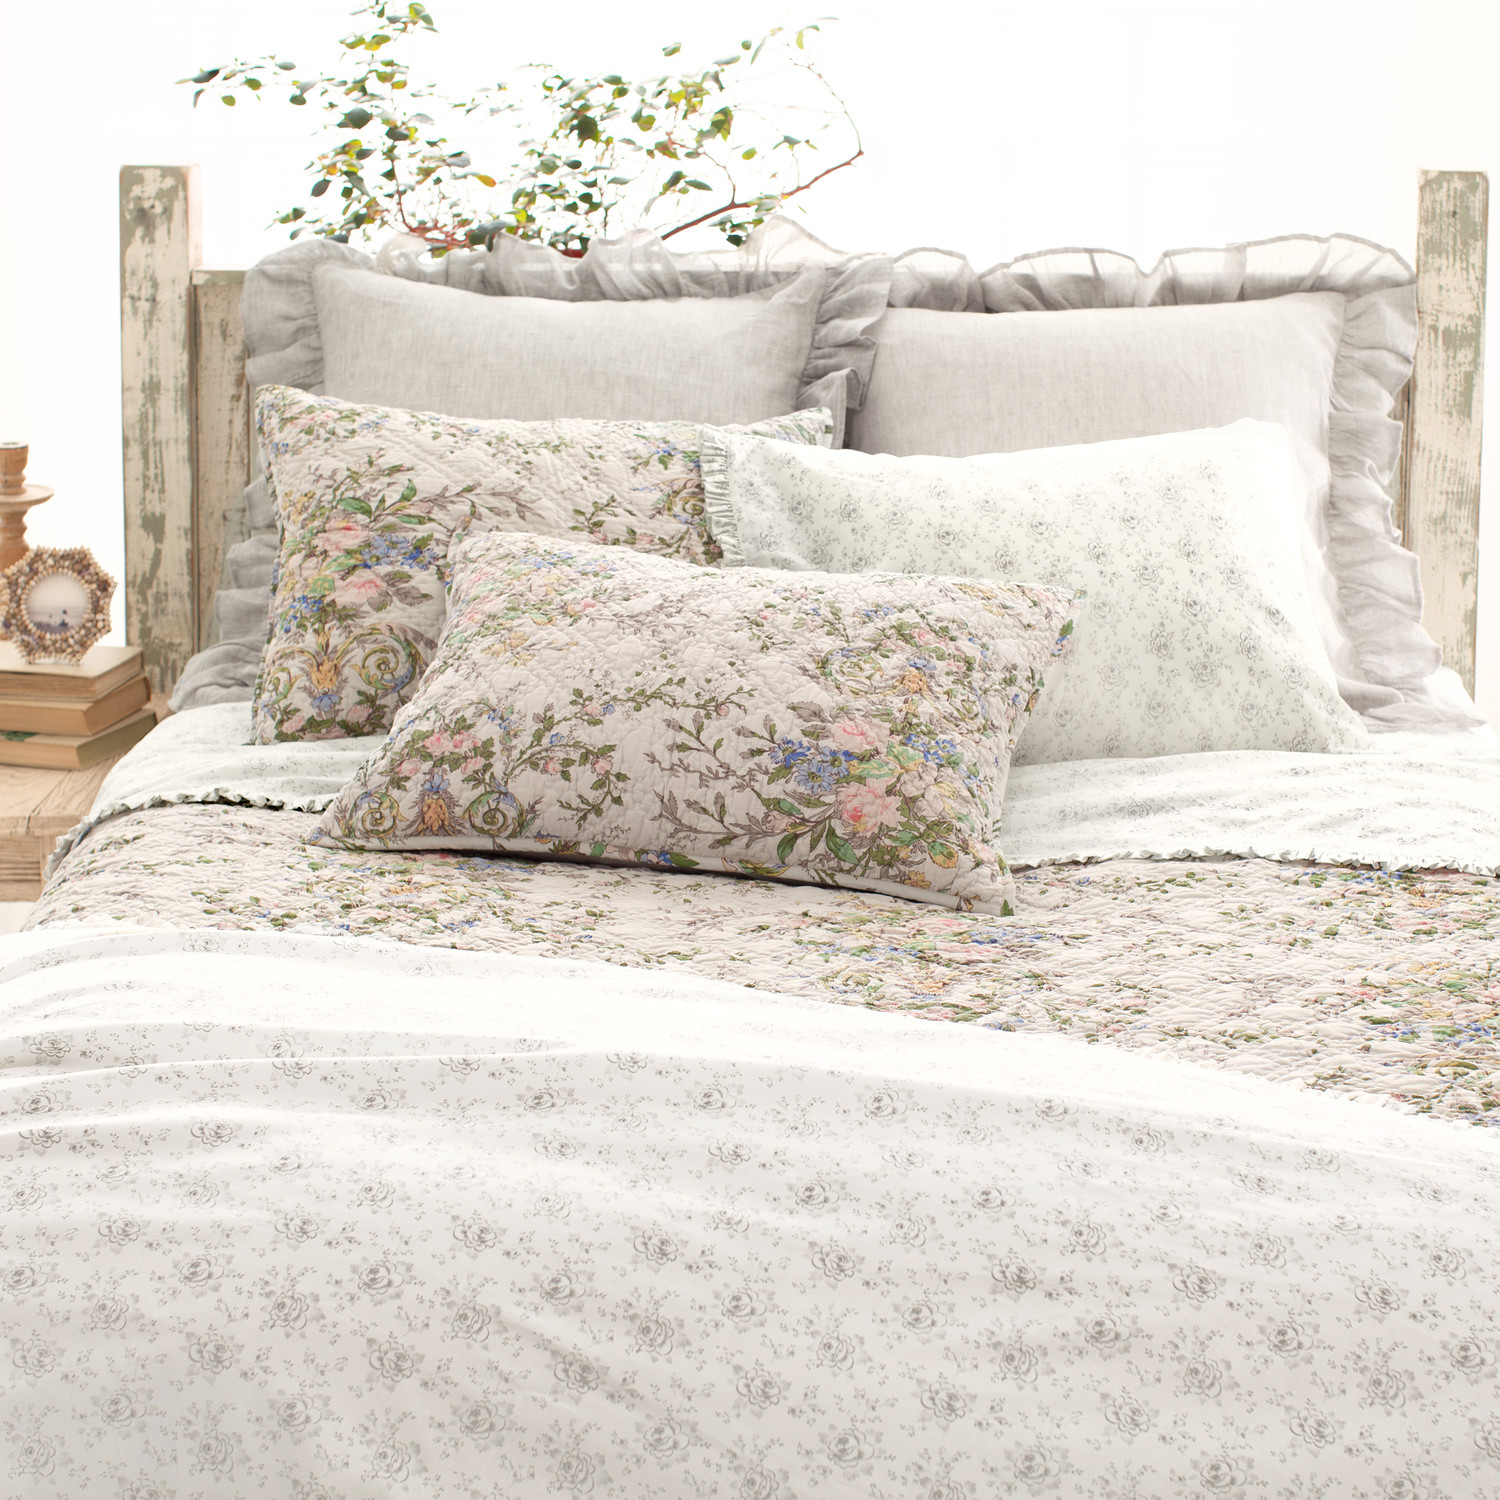 Lovely Pine Cone Hill Bedding For Interesting Bed Ideas: Charming Bed With Wooden Headboard And Pine Cone Hill With Floral Pattern For Bedroom Decor Ideas